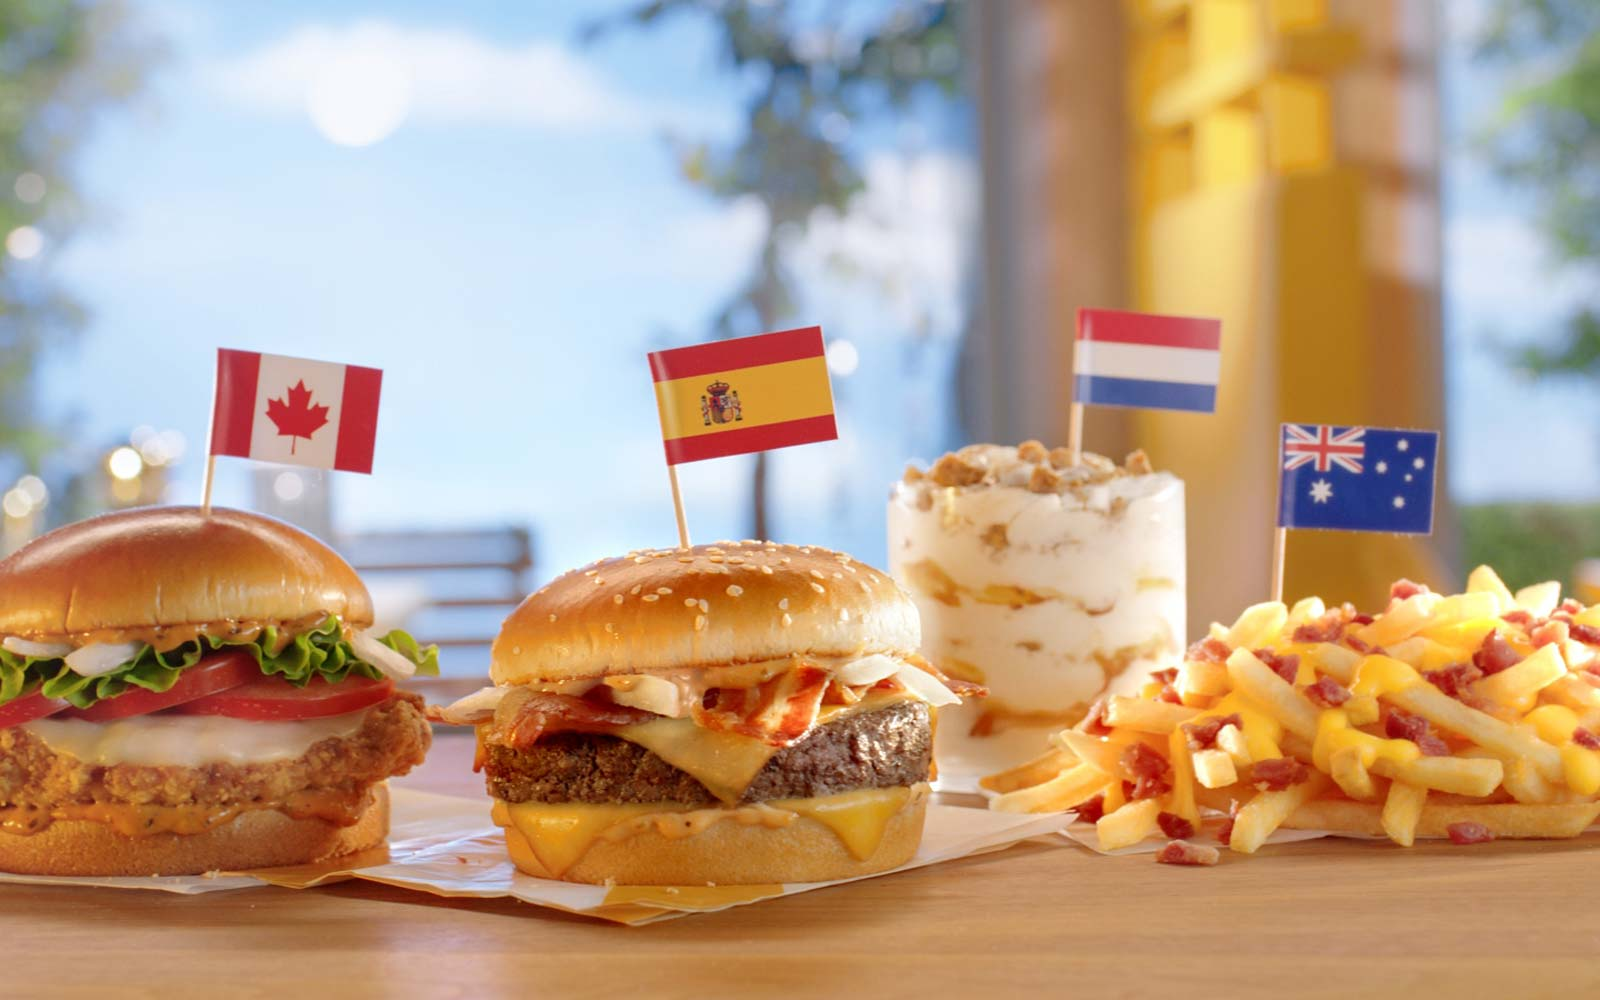 McDonald's Will Accept Foreign Currency This Week to Celebrate Their New 'Worldwide Favorites' Menu